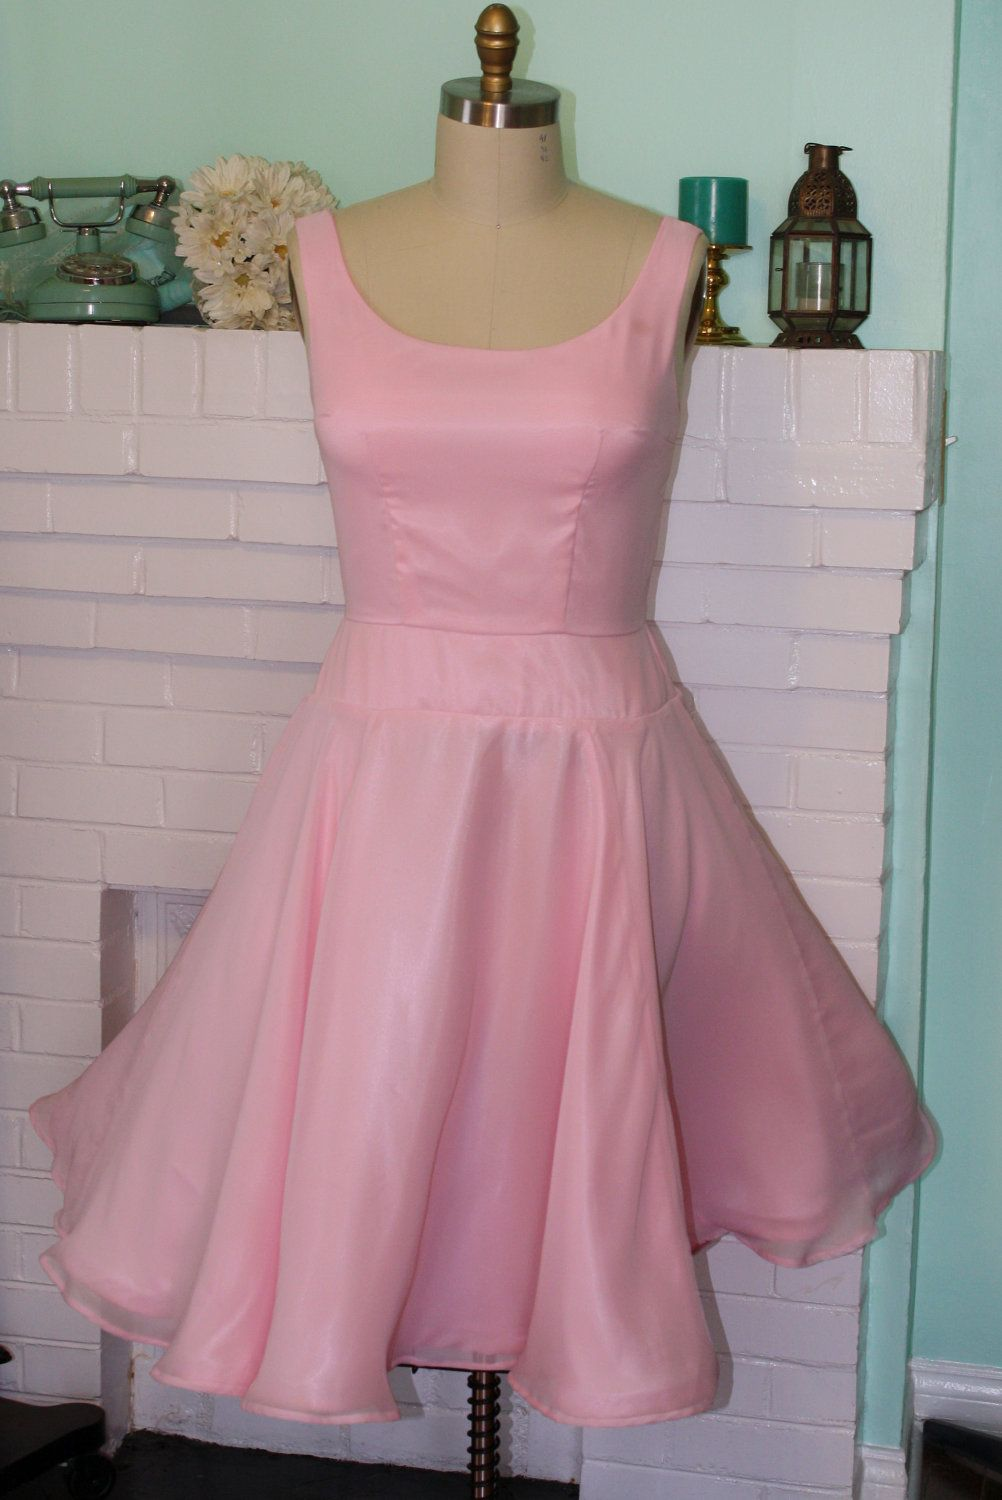 Dirty Dancing Dress. I always wanted one!!! | Clothes | Pinterest ...